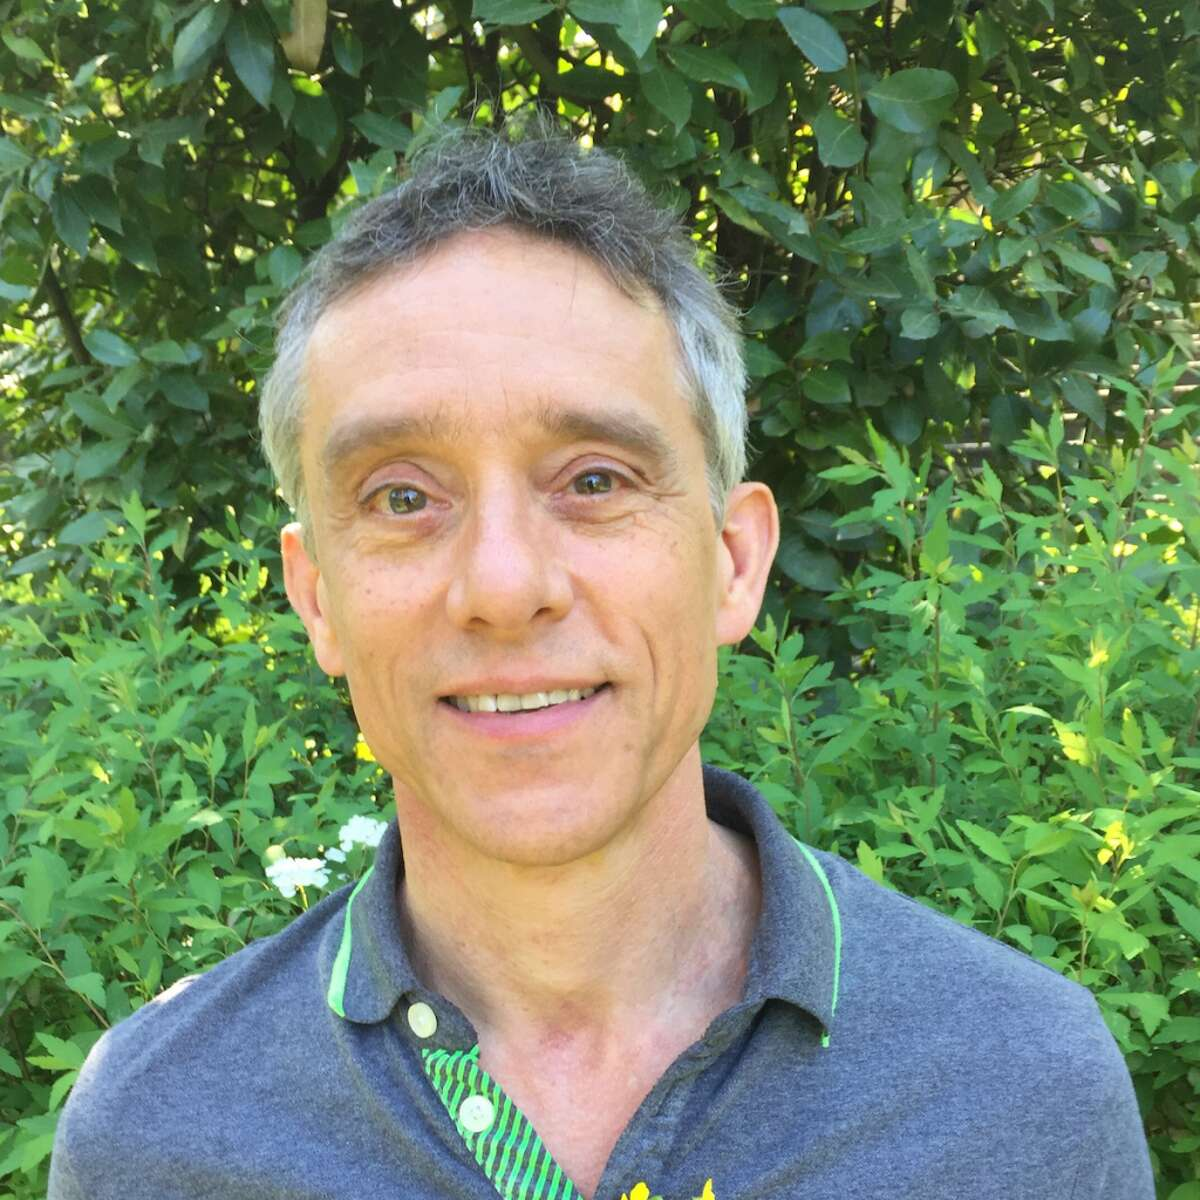 Peter Bancel will give a talk on climate change titled 'Where We Are and Where We Are Going' at the Ridgefield Library Thursday, Nov. 1.